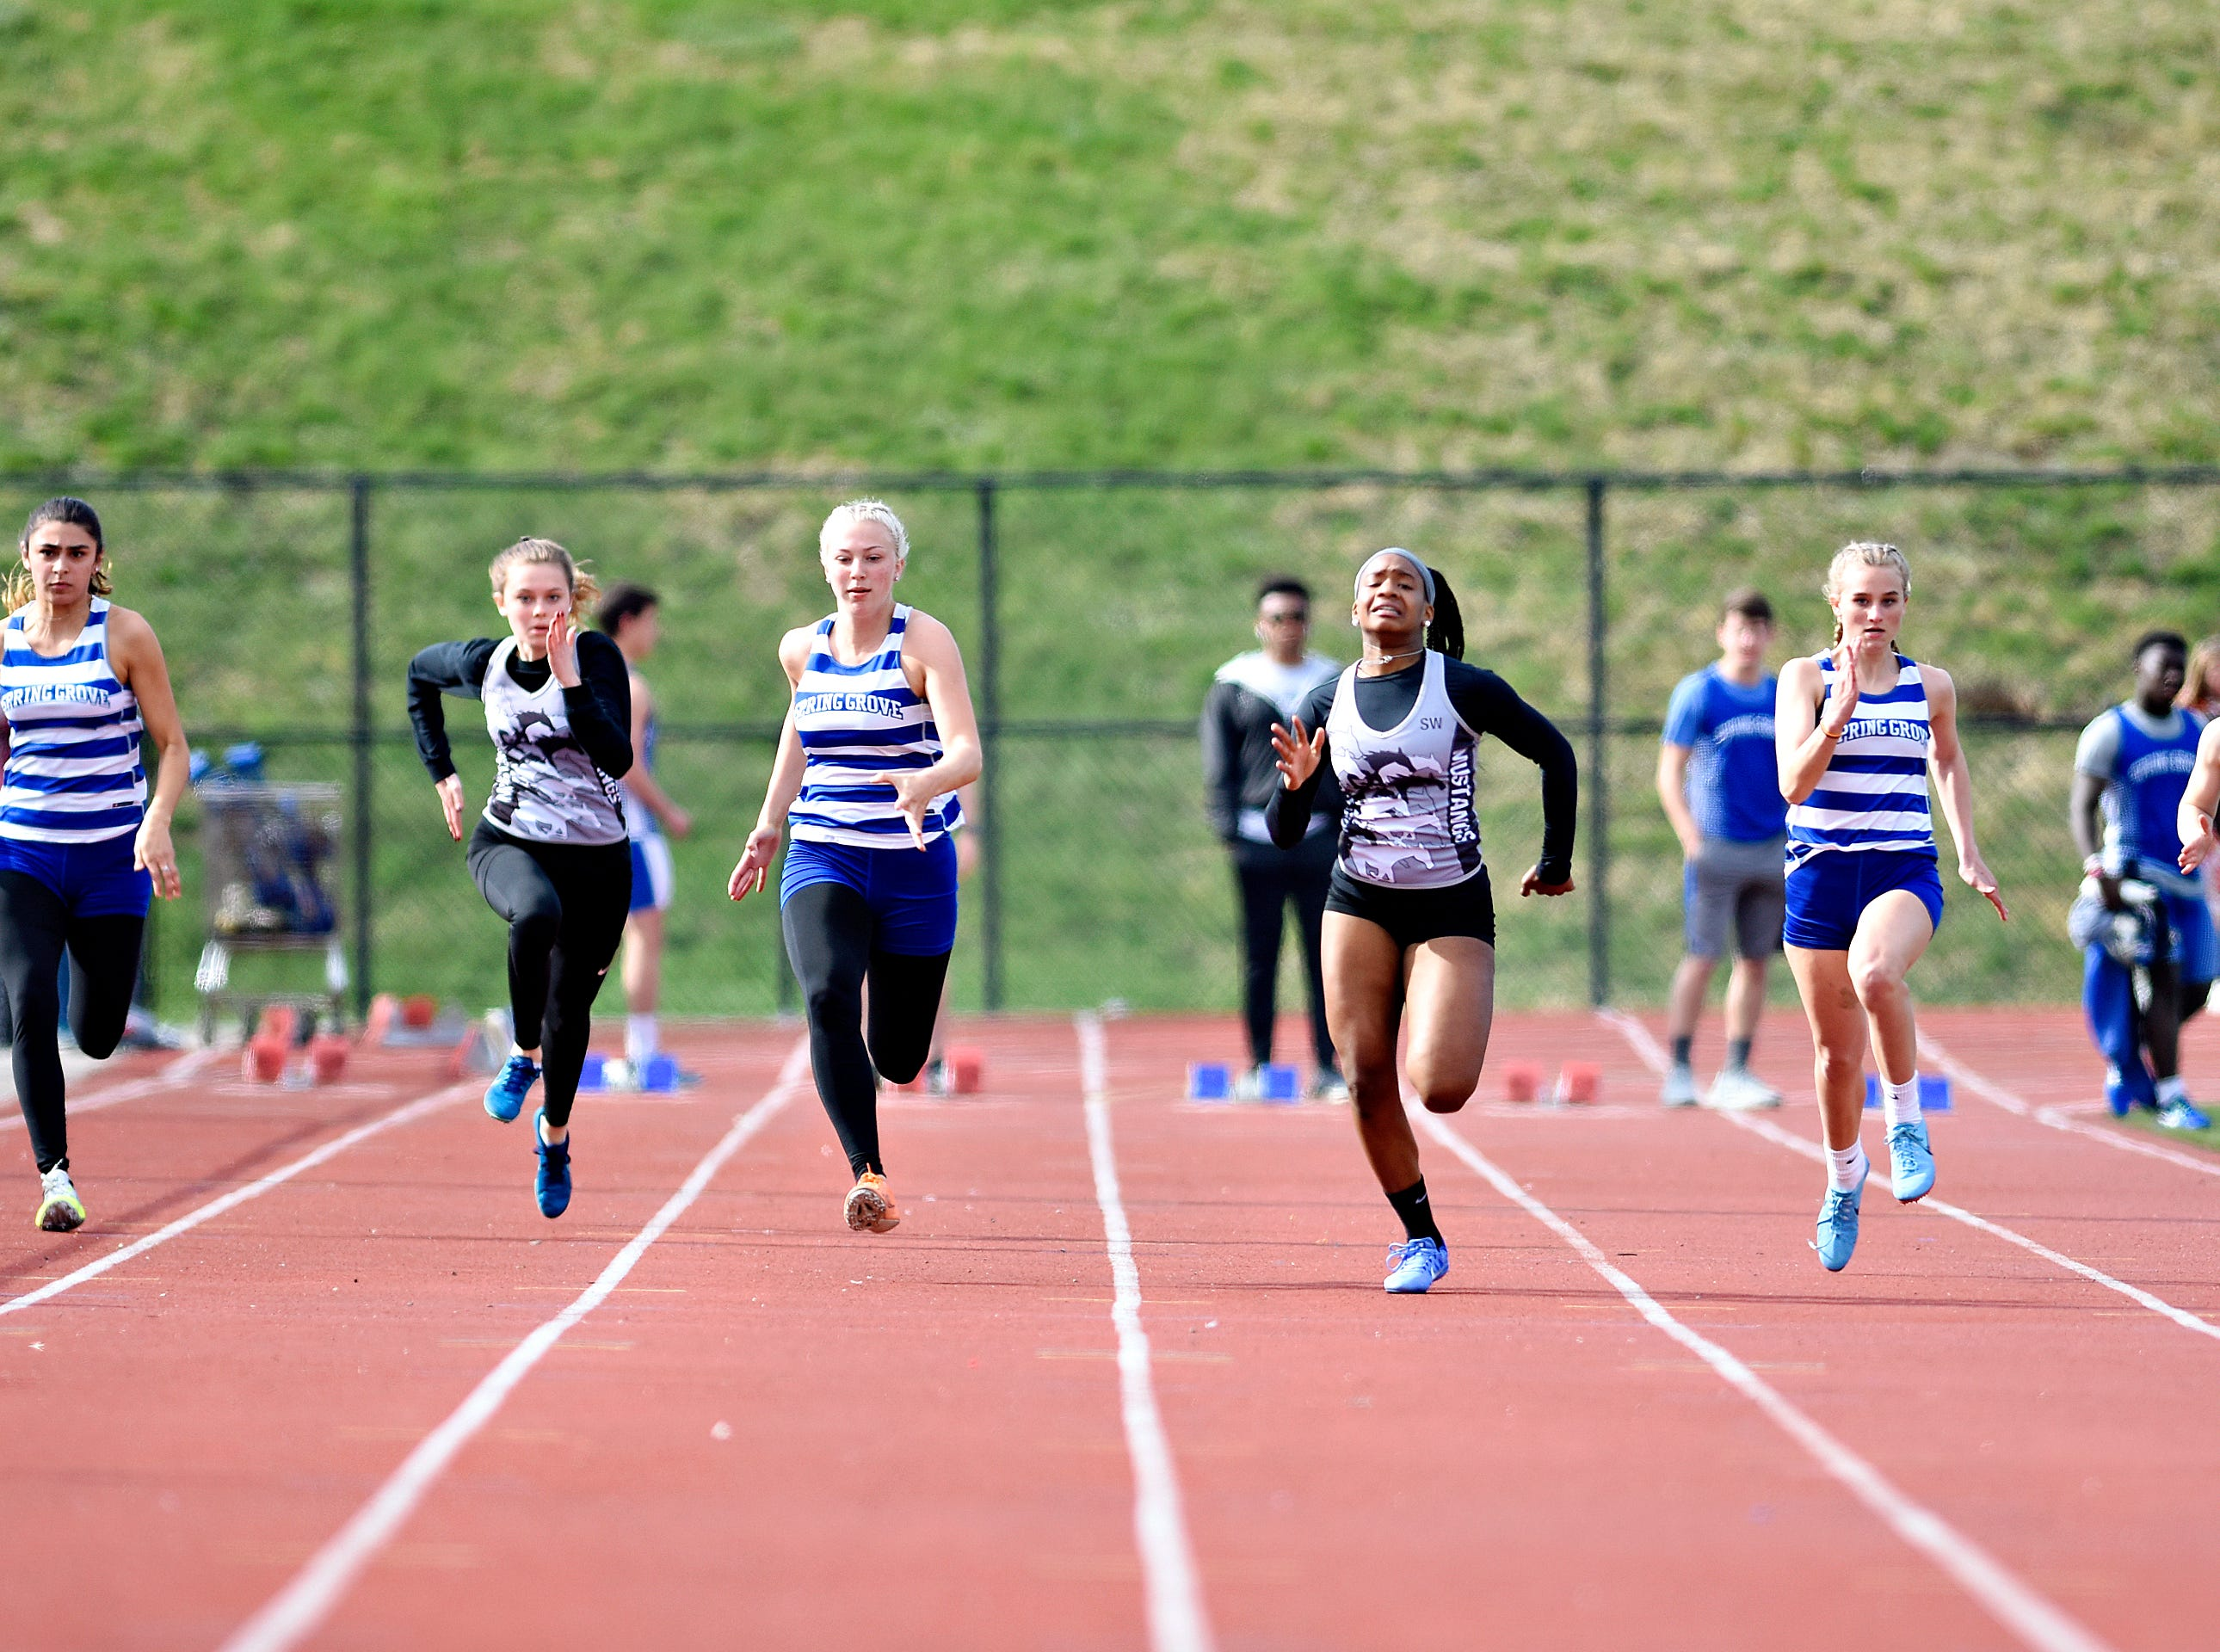 South Western's Zaiyah Marshall, third from right, wins the 100 Yard Dash during track action against Spring Grove in Jackson Township, Thursday, April 11, 2019. Dawn J. Sagert photo